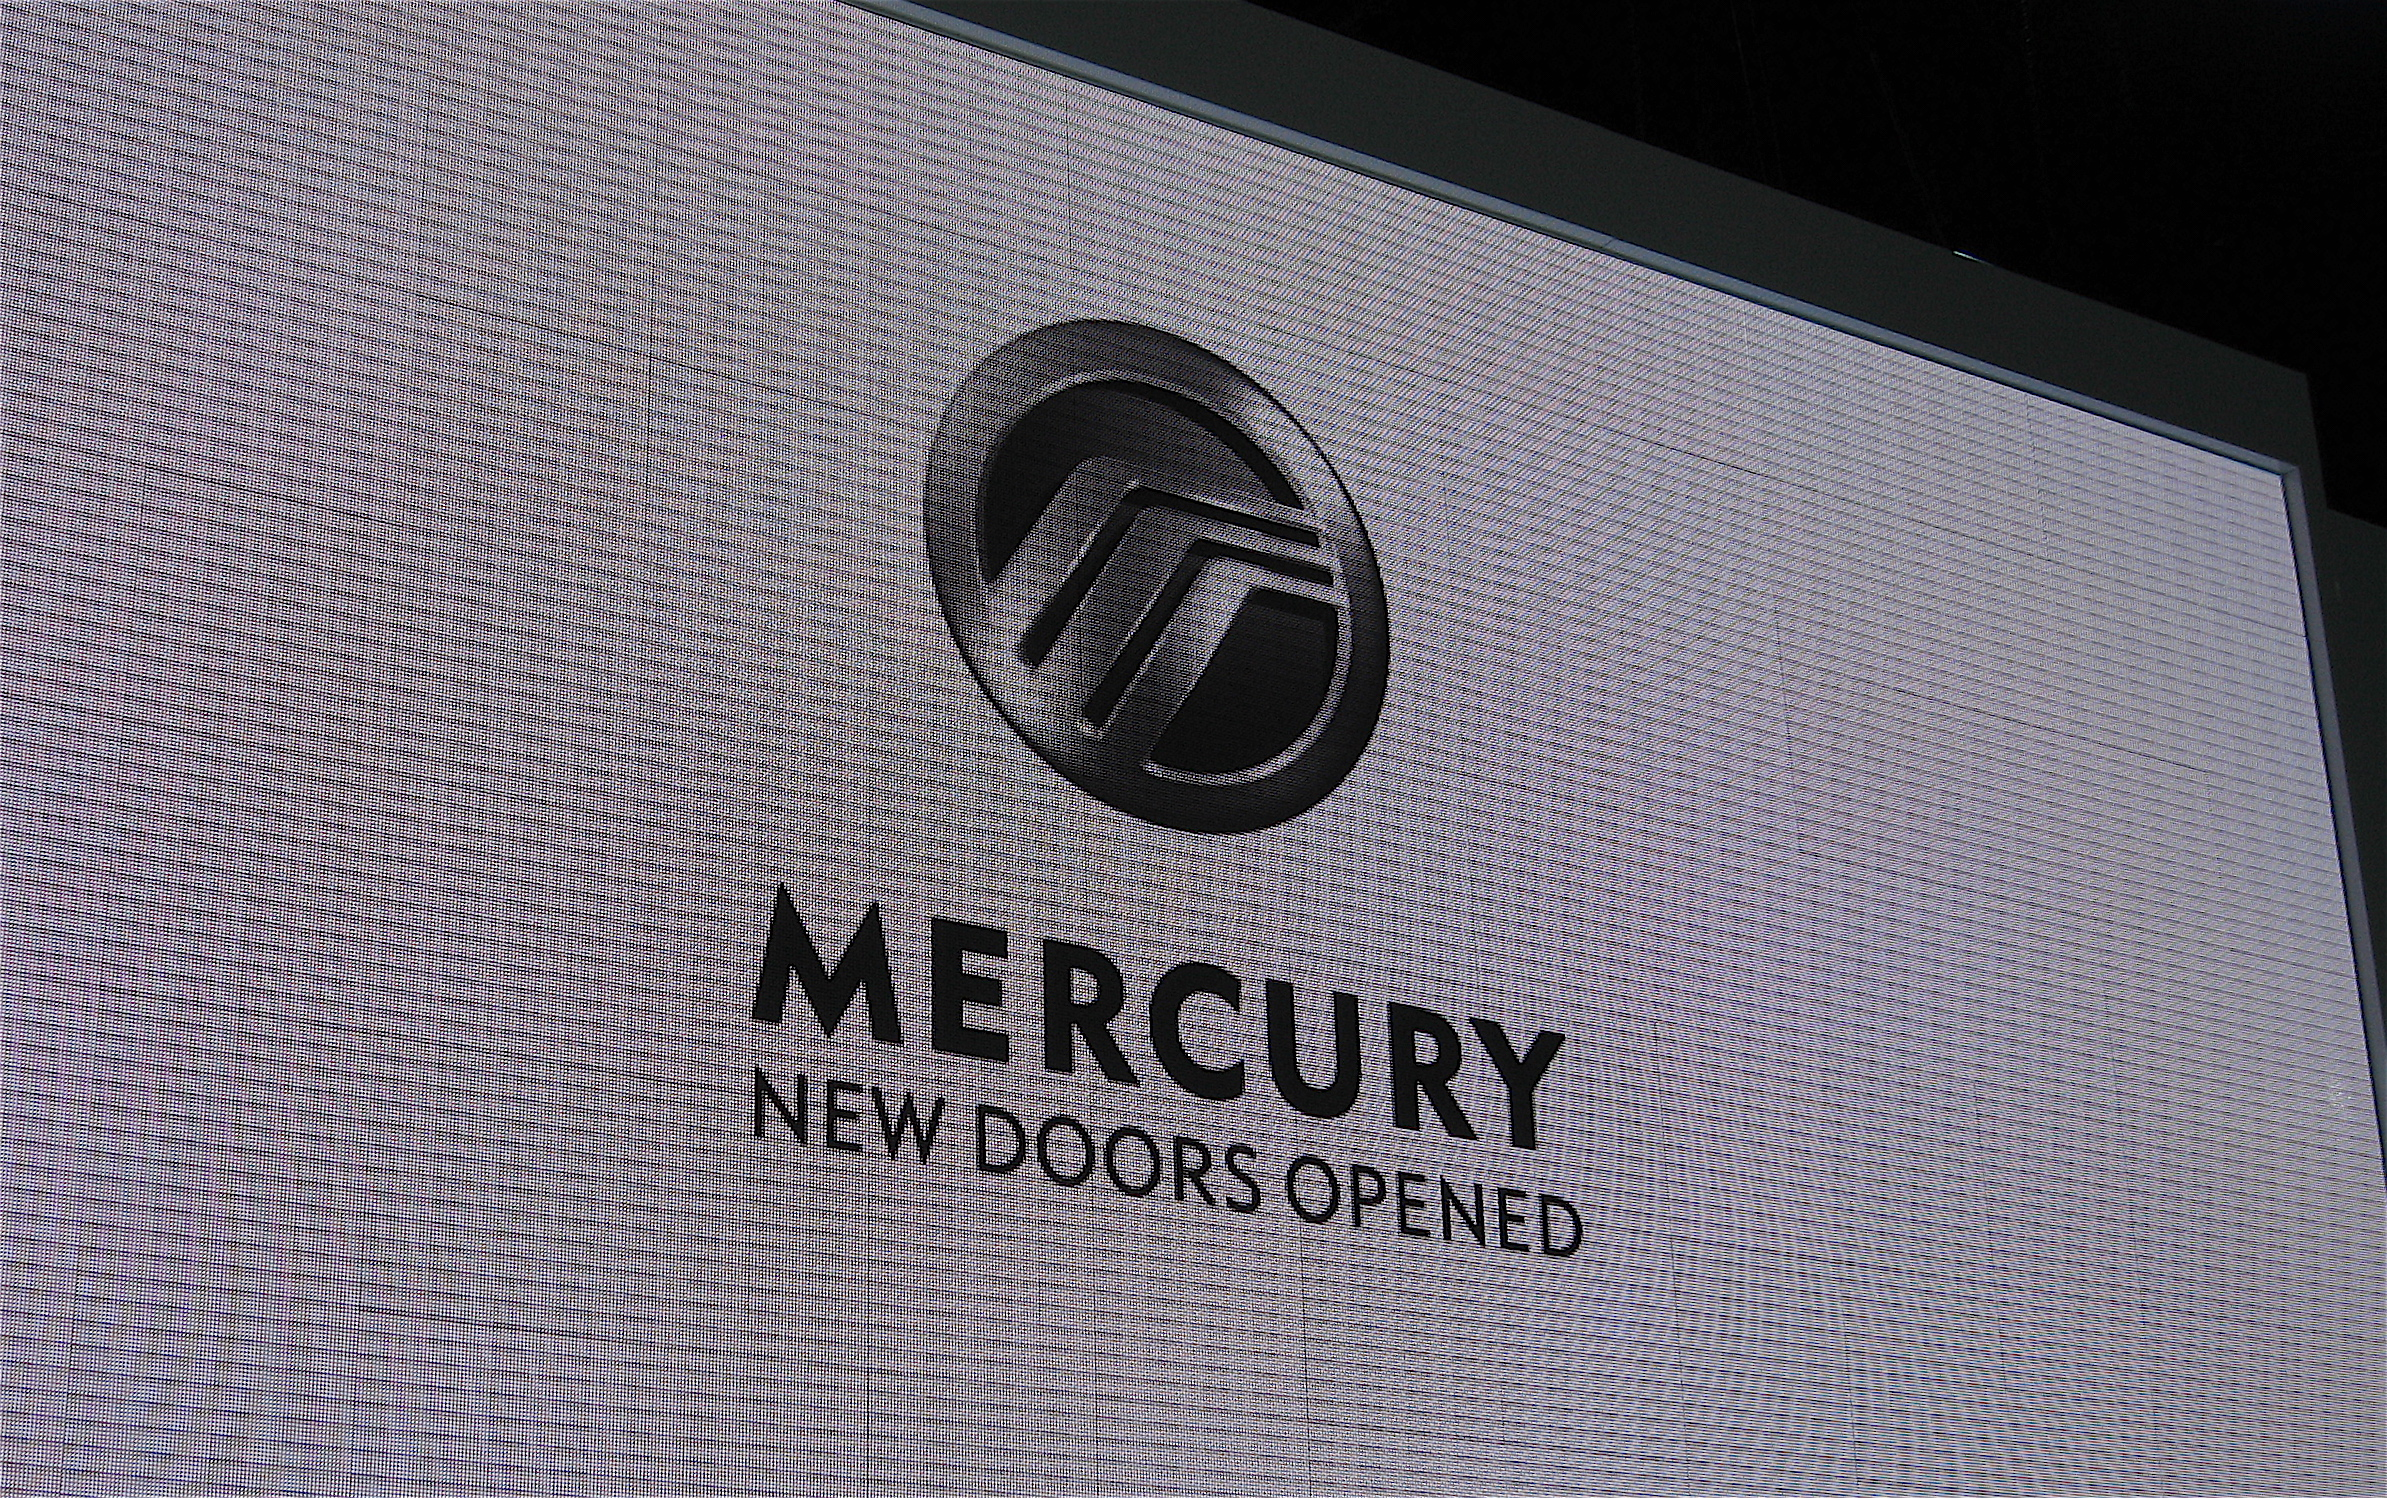 Mercury exhibit, as seen at